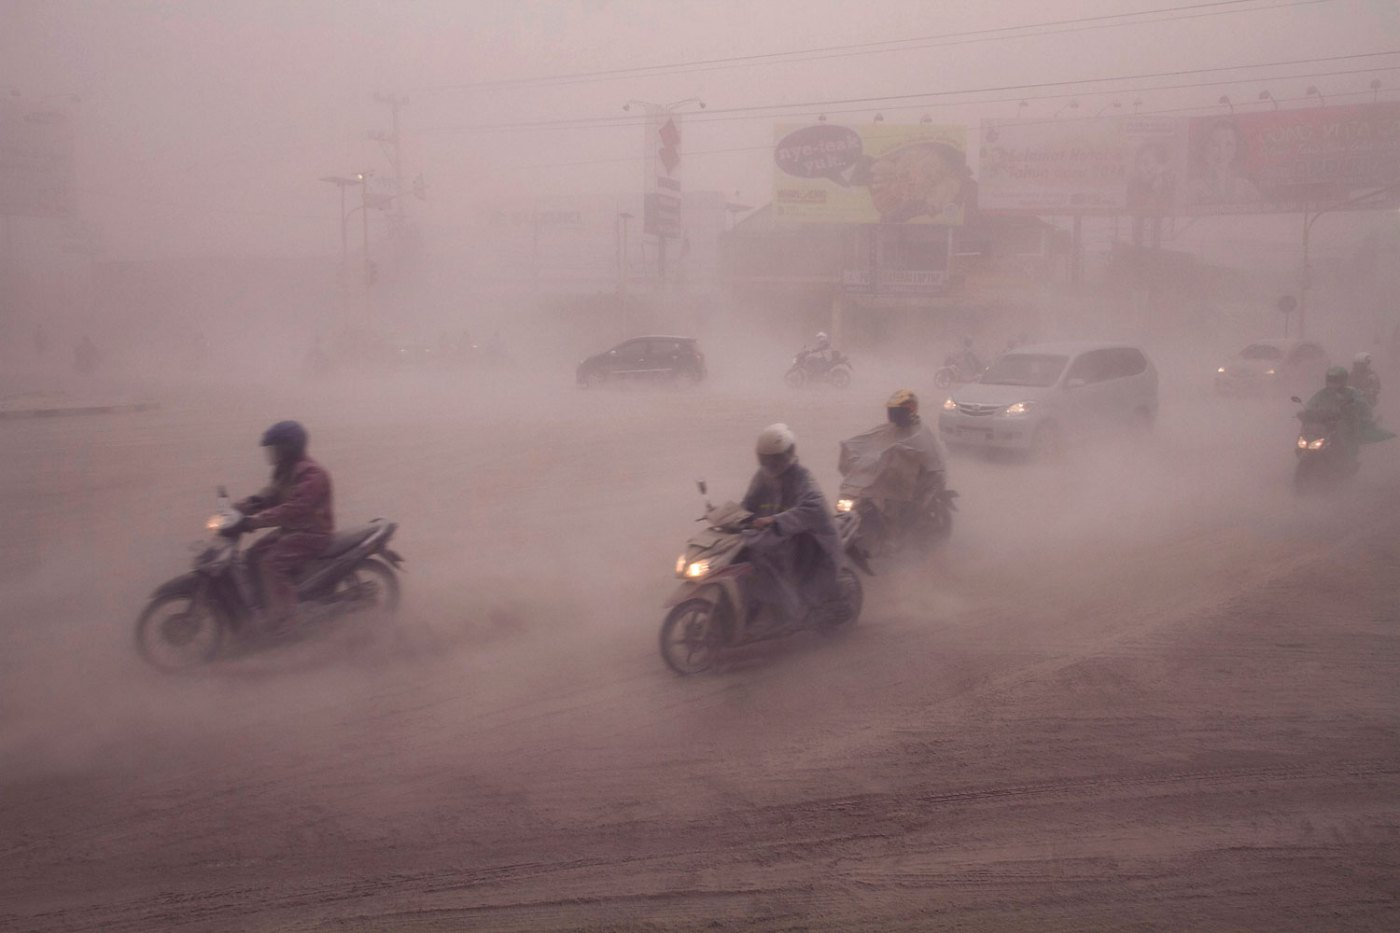 Volcanic ash blankets Yogyakarta in Central Java about 200 kilometers (124 miles) west of the Mount Kelud volcano in East Java province on Feb. 14, 2014.